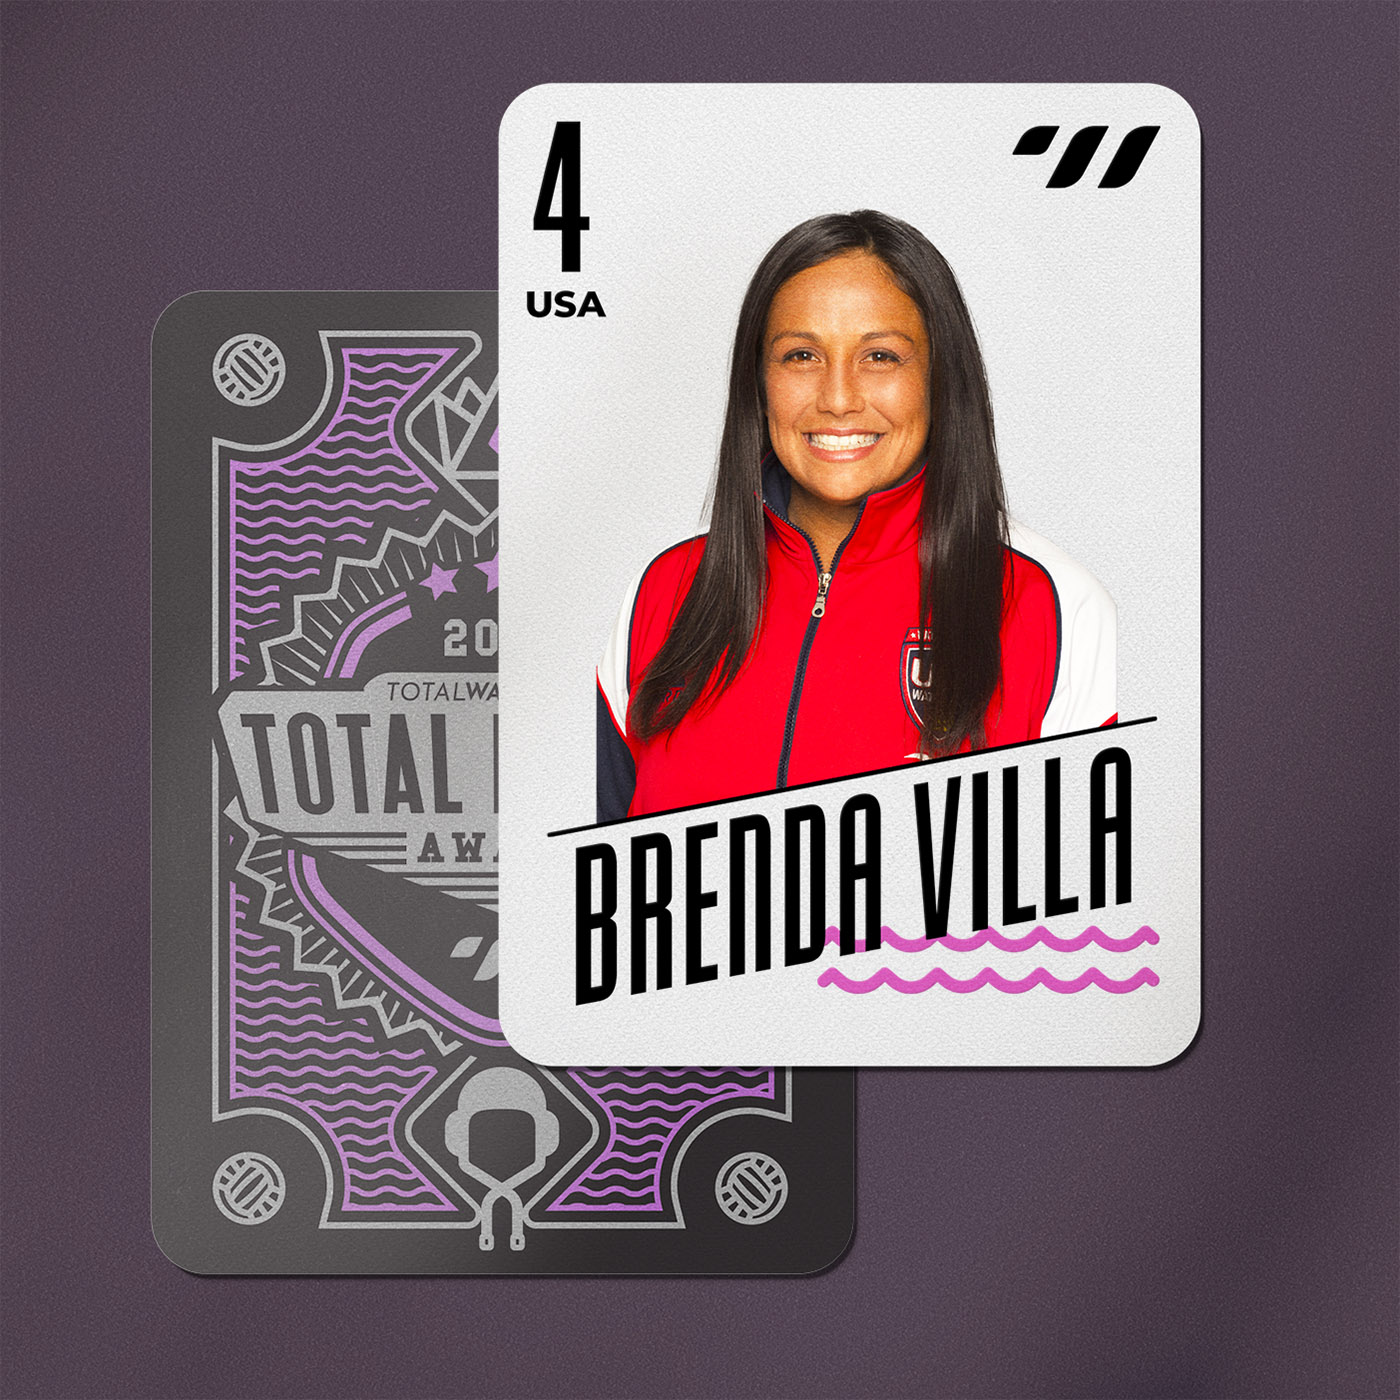 RIGHT SIDE - Brenda Villa (USA)